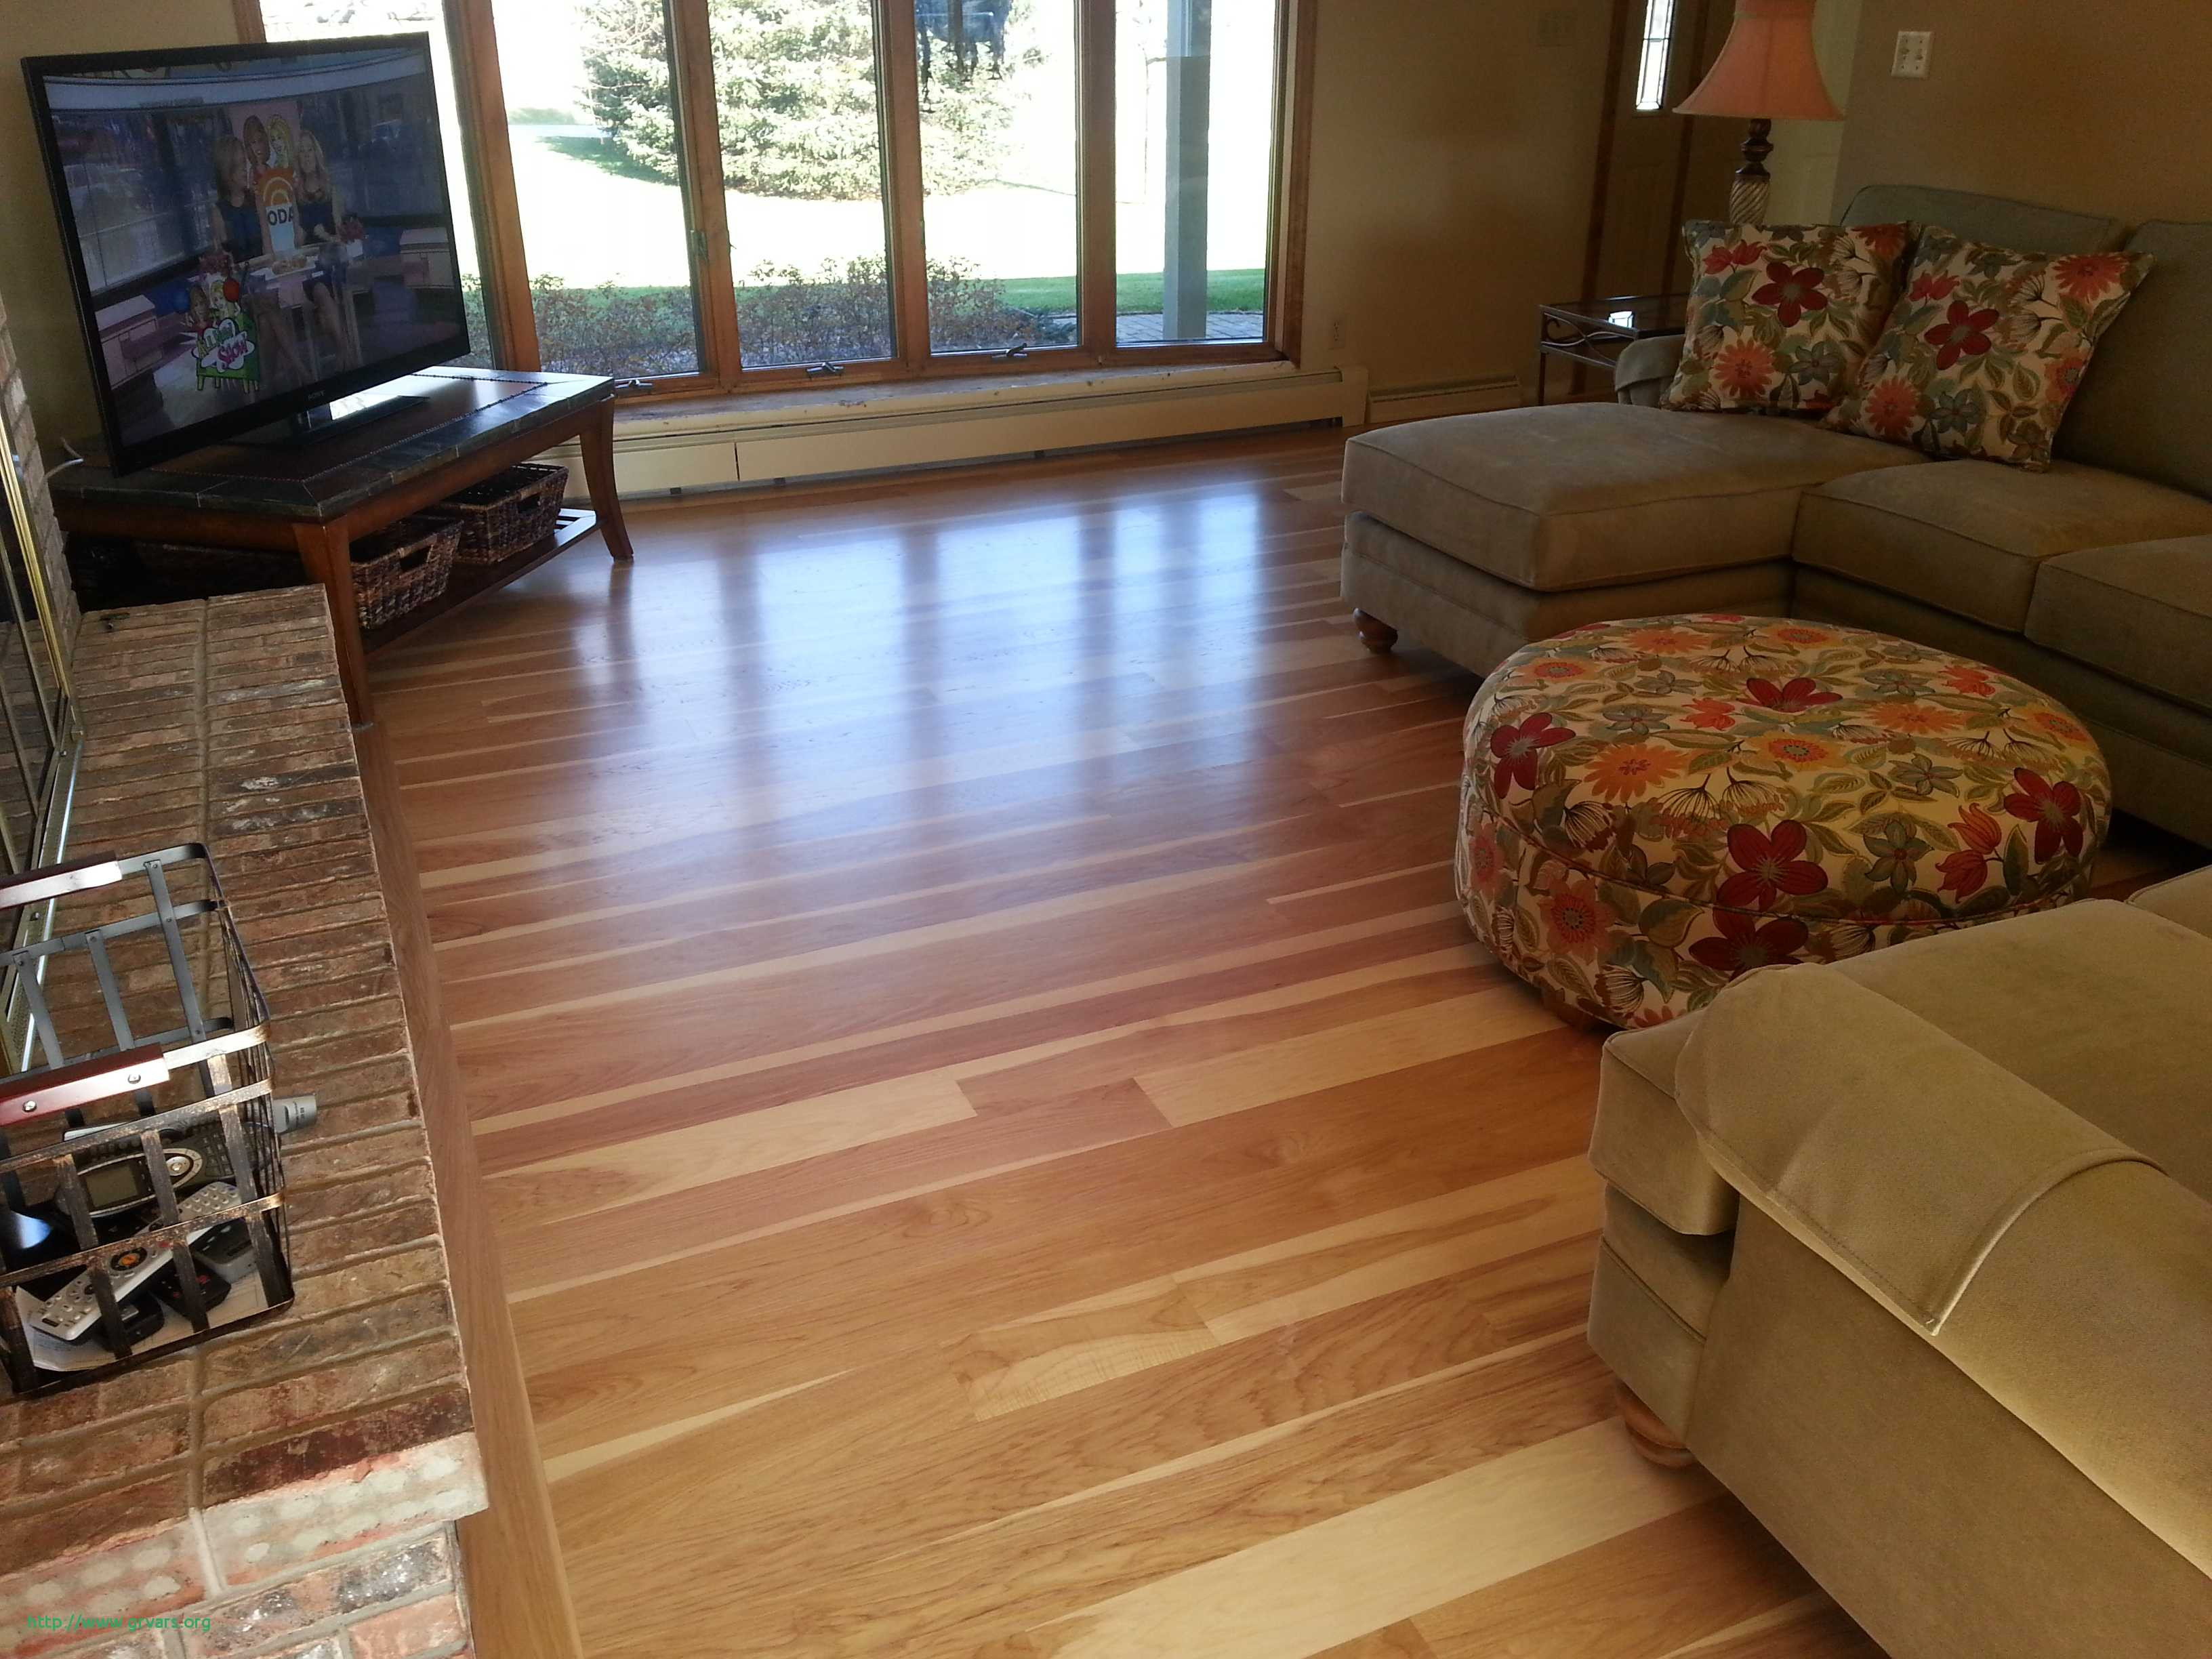 Hardwood Flooring Raleigh Of 16 Charmant Step by Step Hardwood Floor Installation Ideas Blog within Custom Hickory Wide Plank Hardwood Floor Miwlaukee Wi